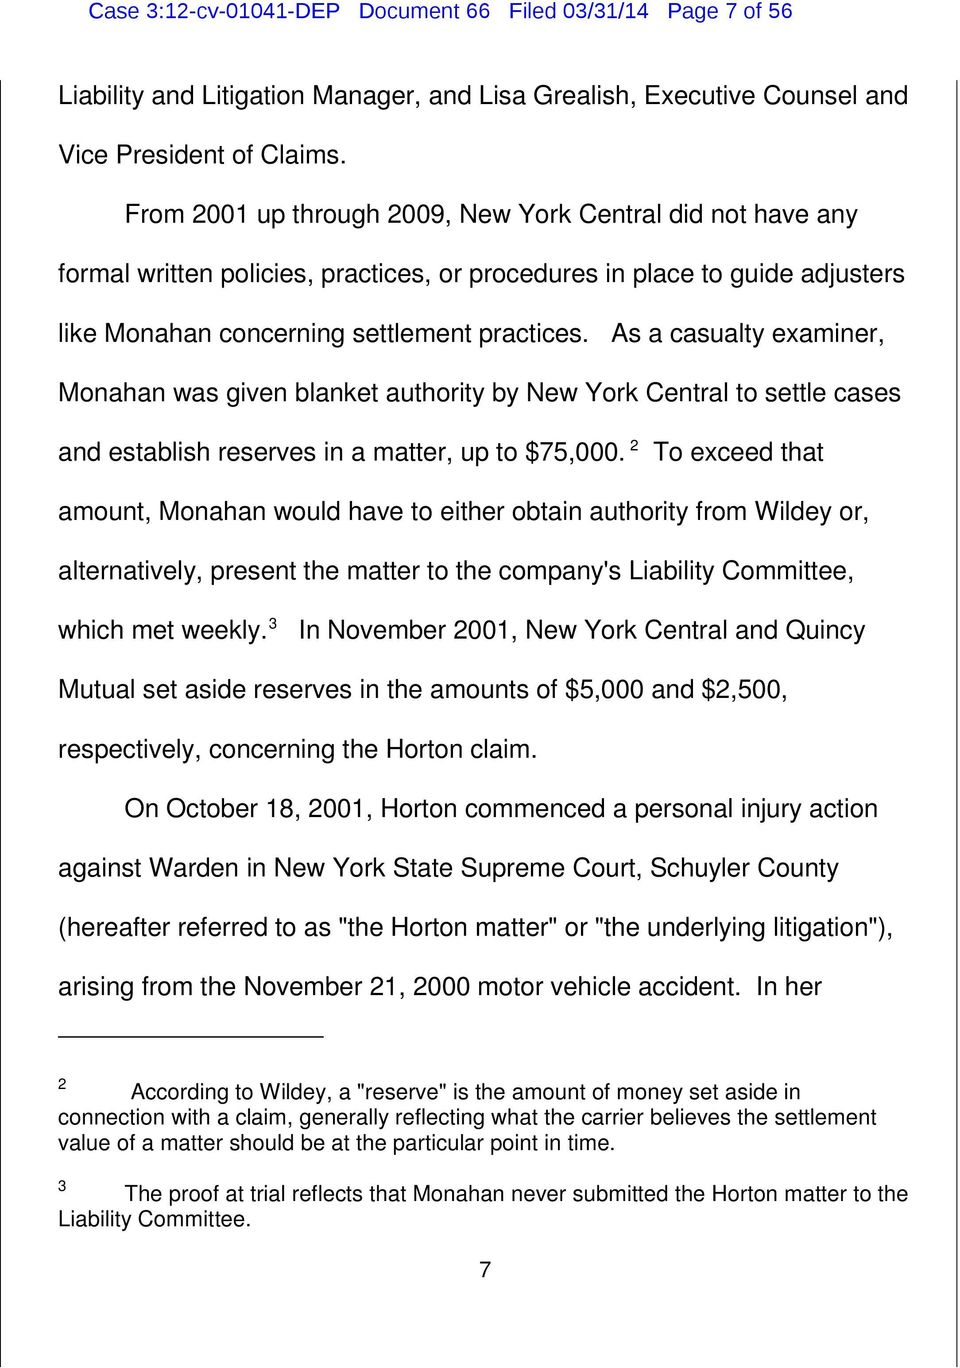 As a casualty examiner, Monahan was given blanket authority by New York Central to settle cases and establish reserves in a matter, up to $75,000.